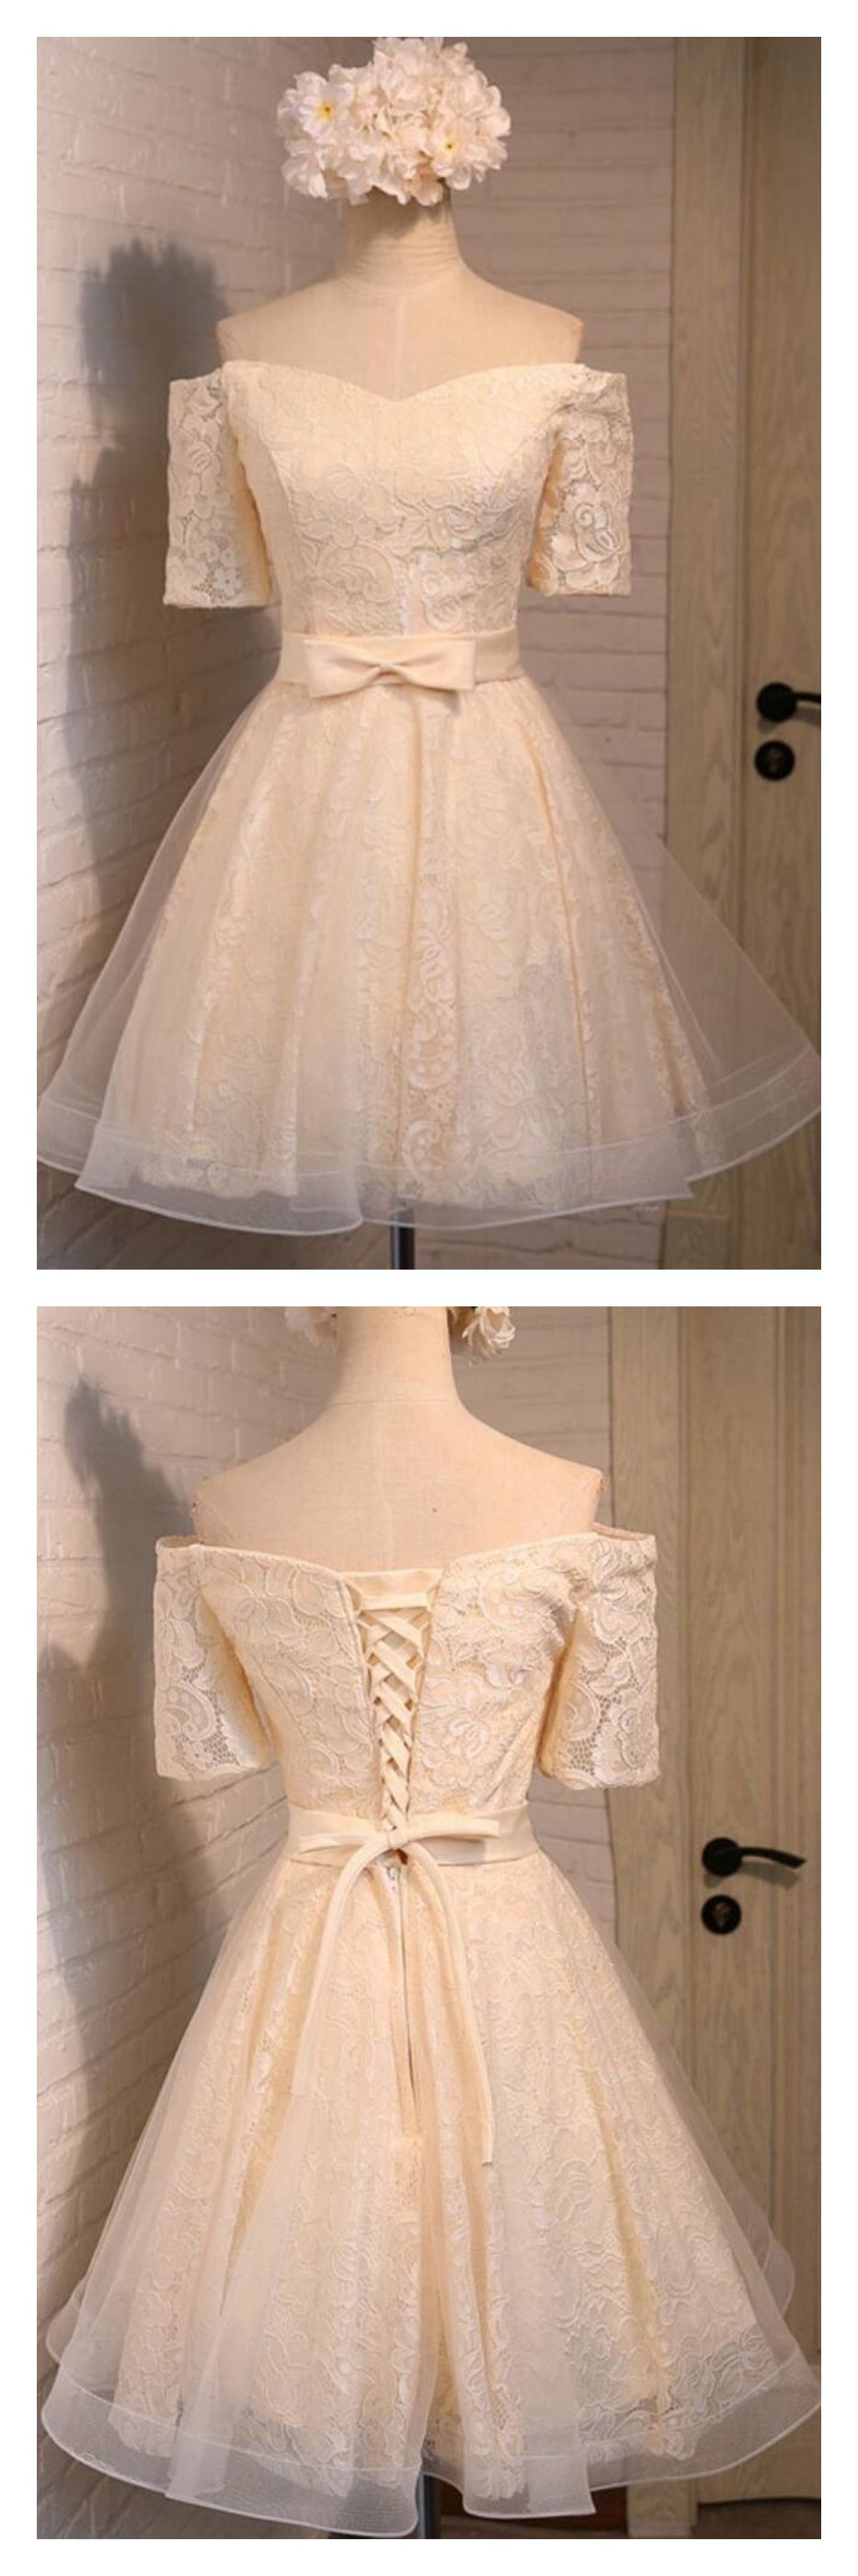 Off shoulder bowknot lace homecoming dresses ed homecoming